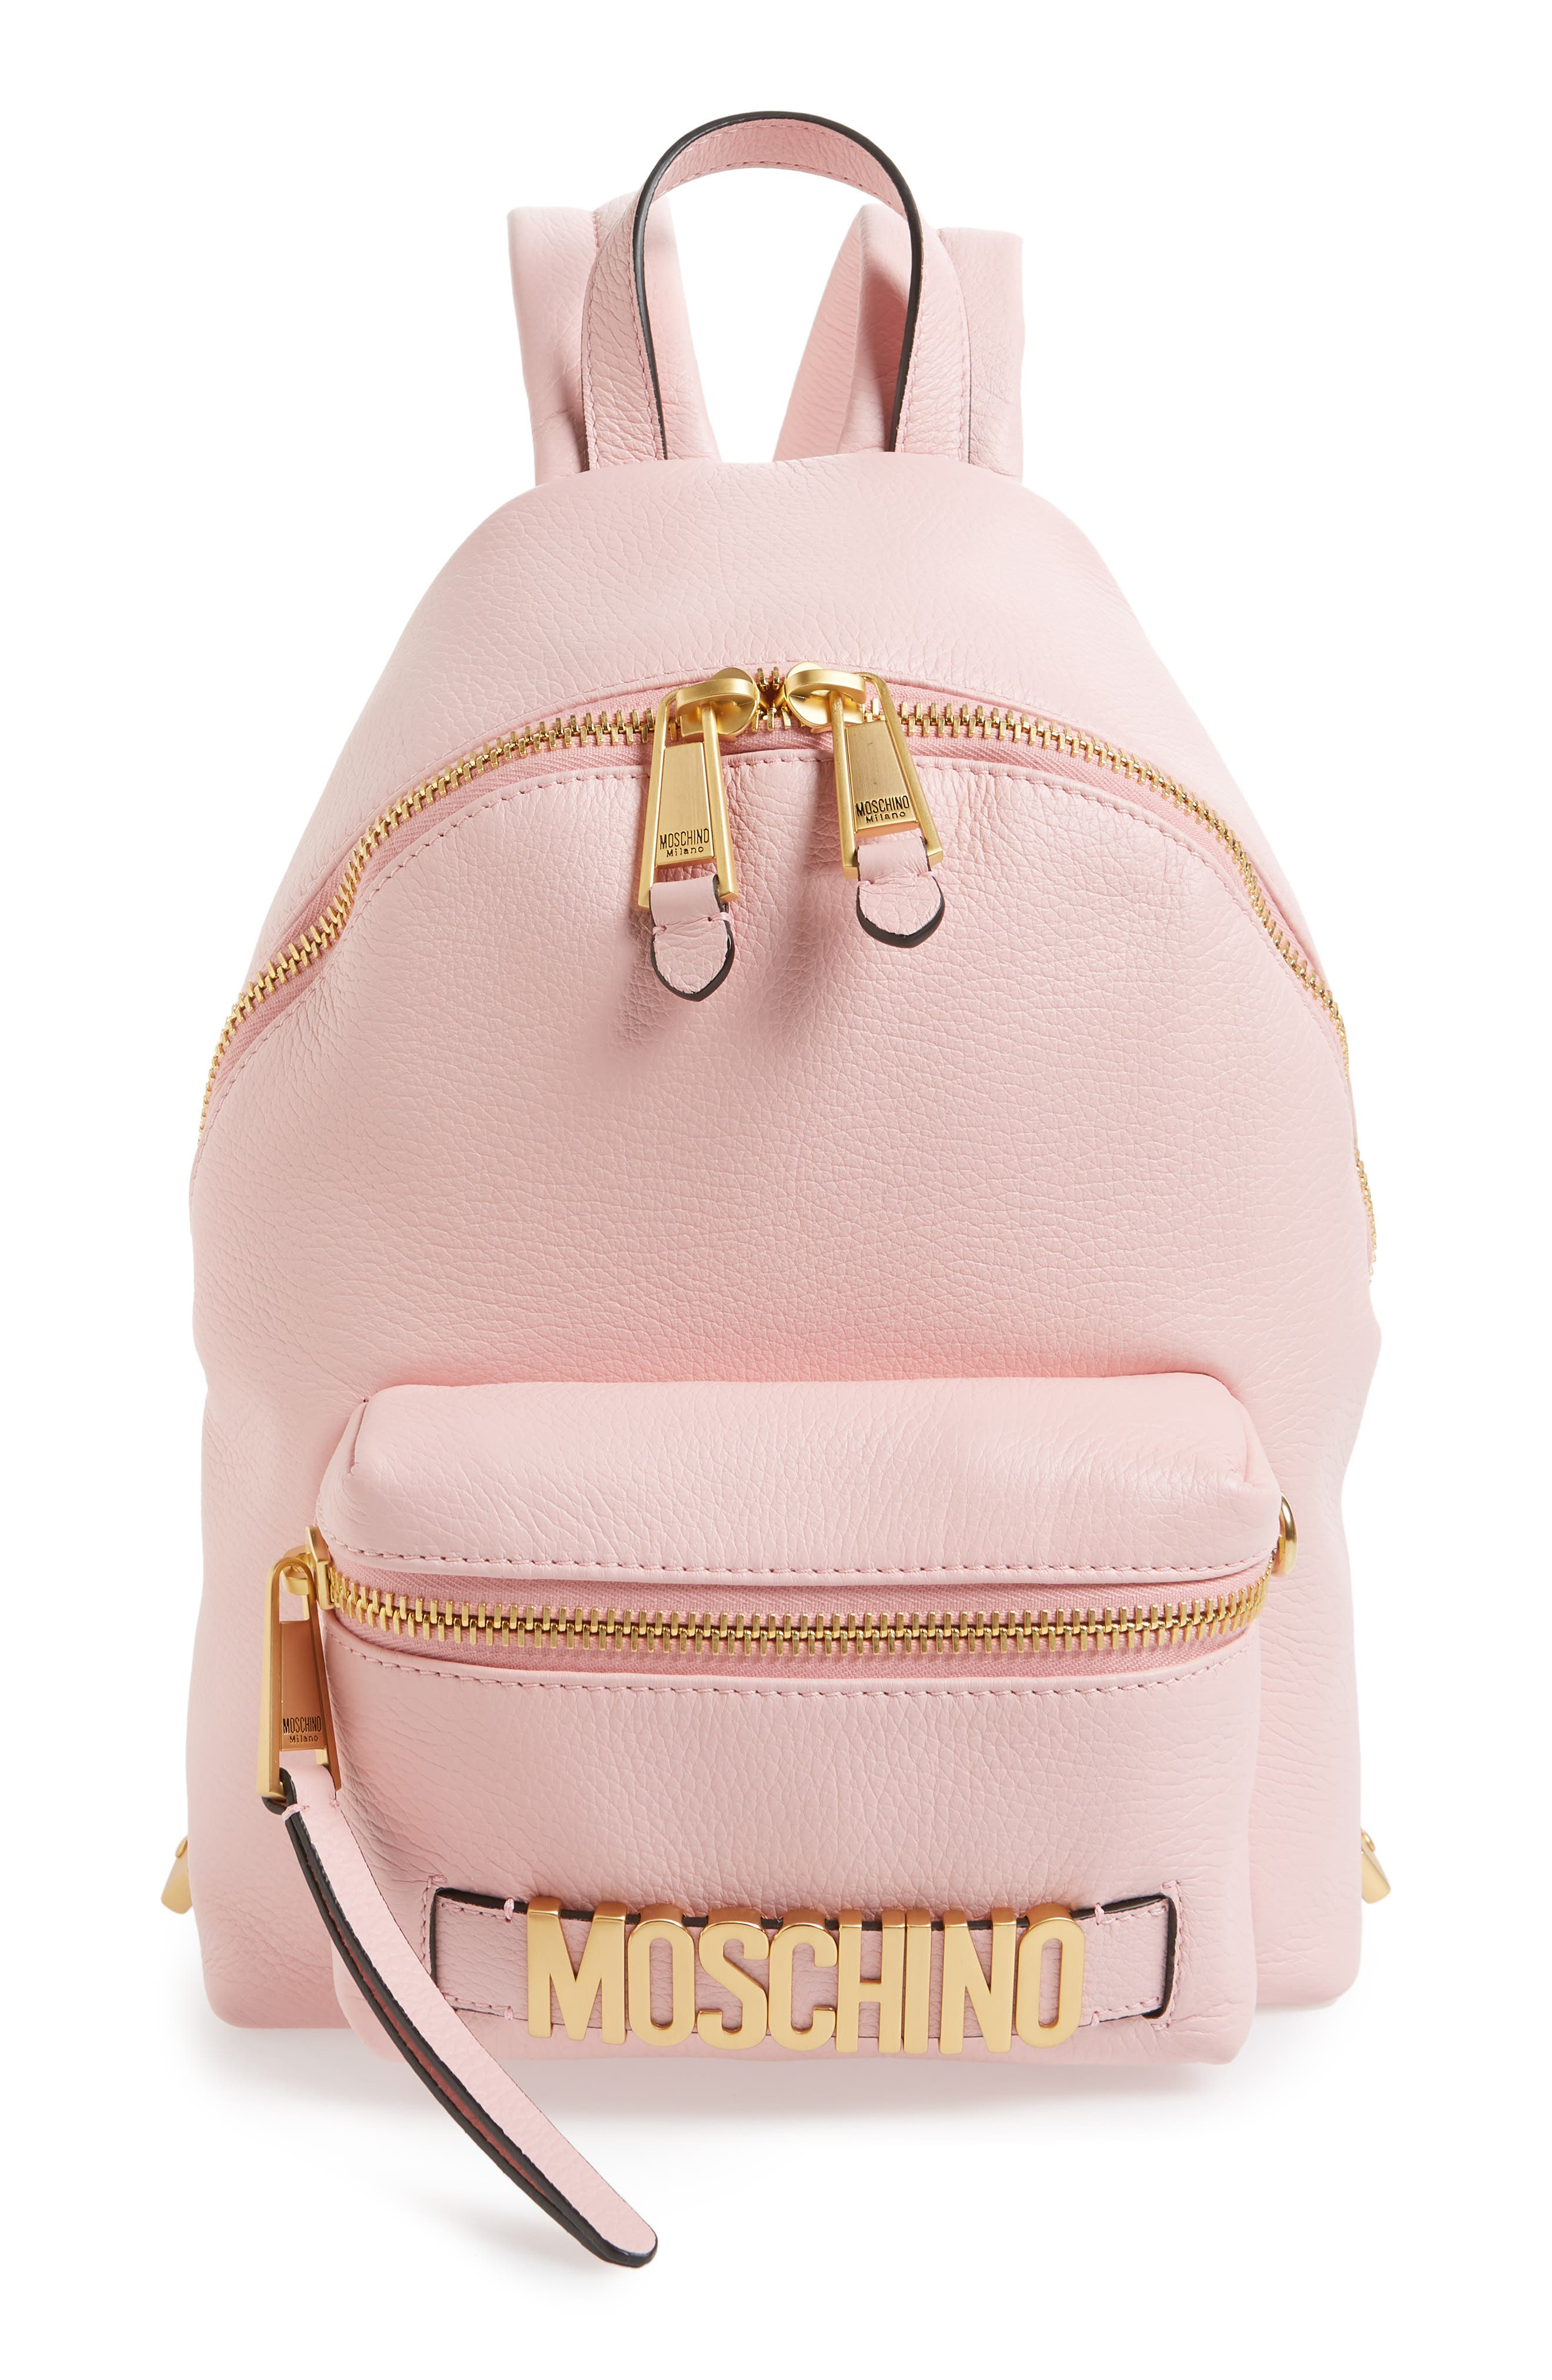 MOSCHINO,                             Logo Leather Backpack,                             Main thumbnail 1, color,                             PINK